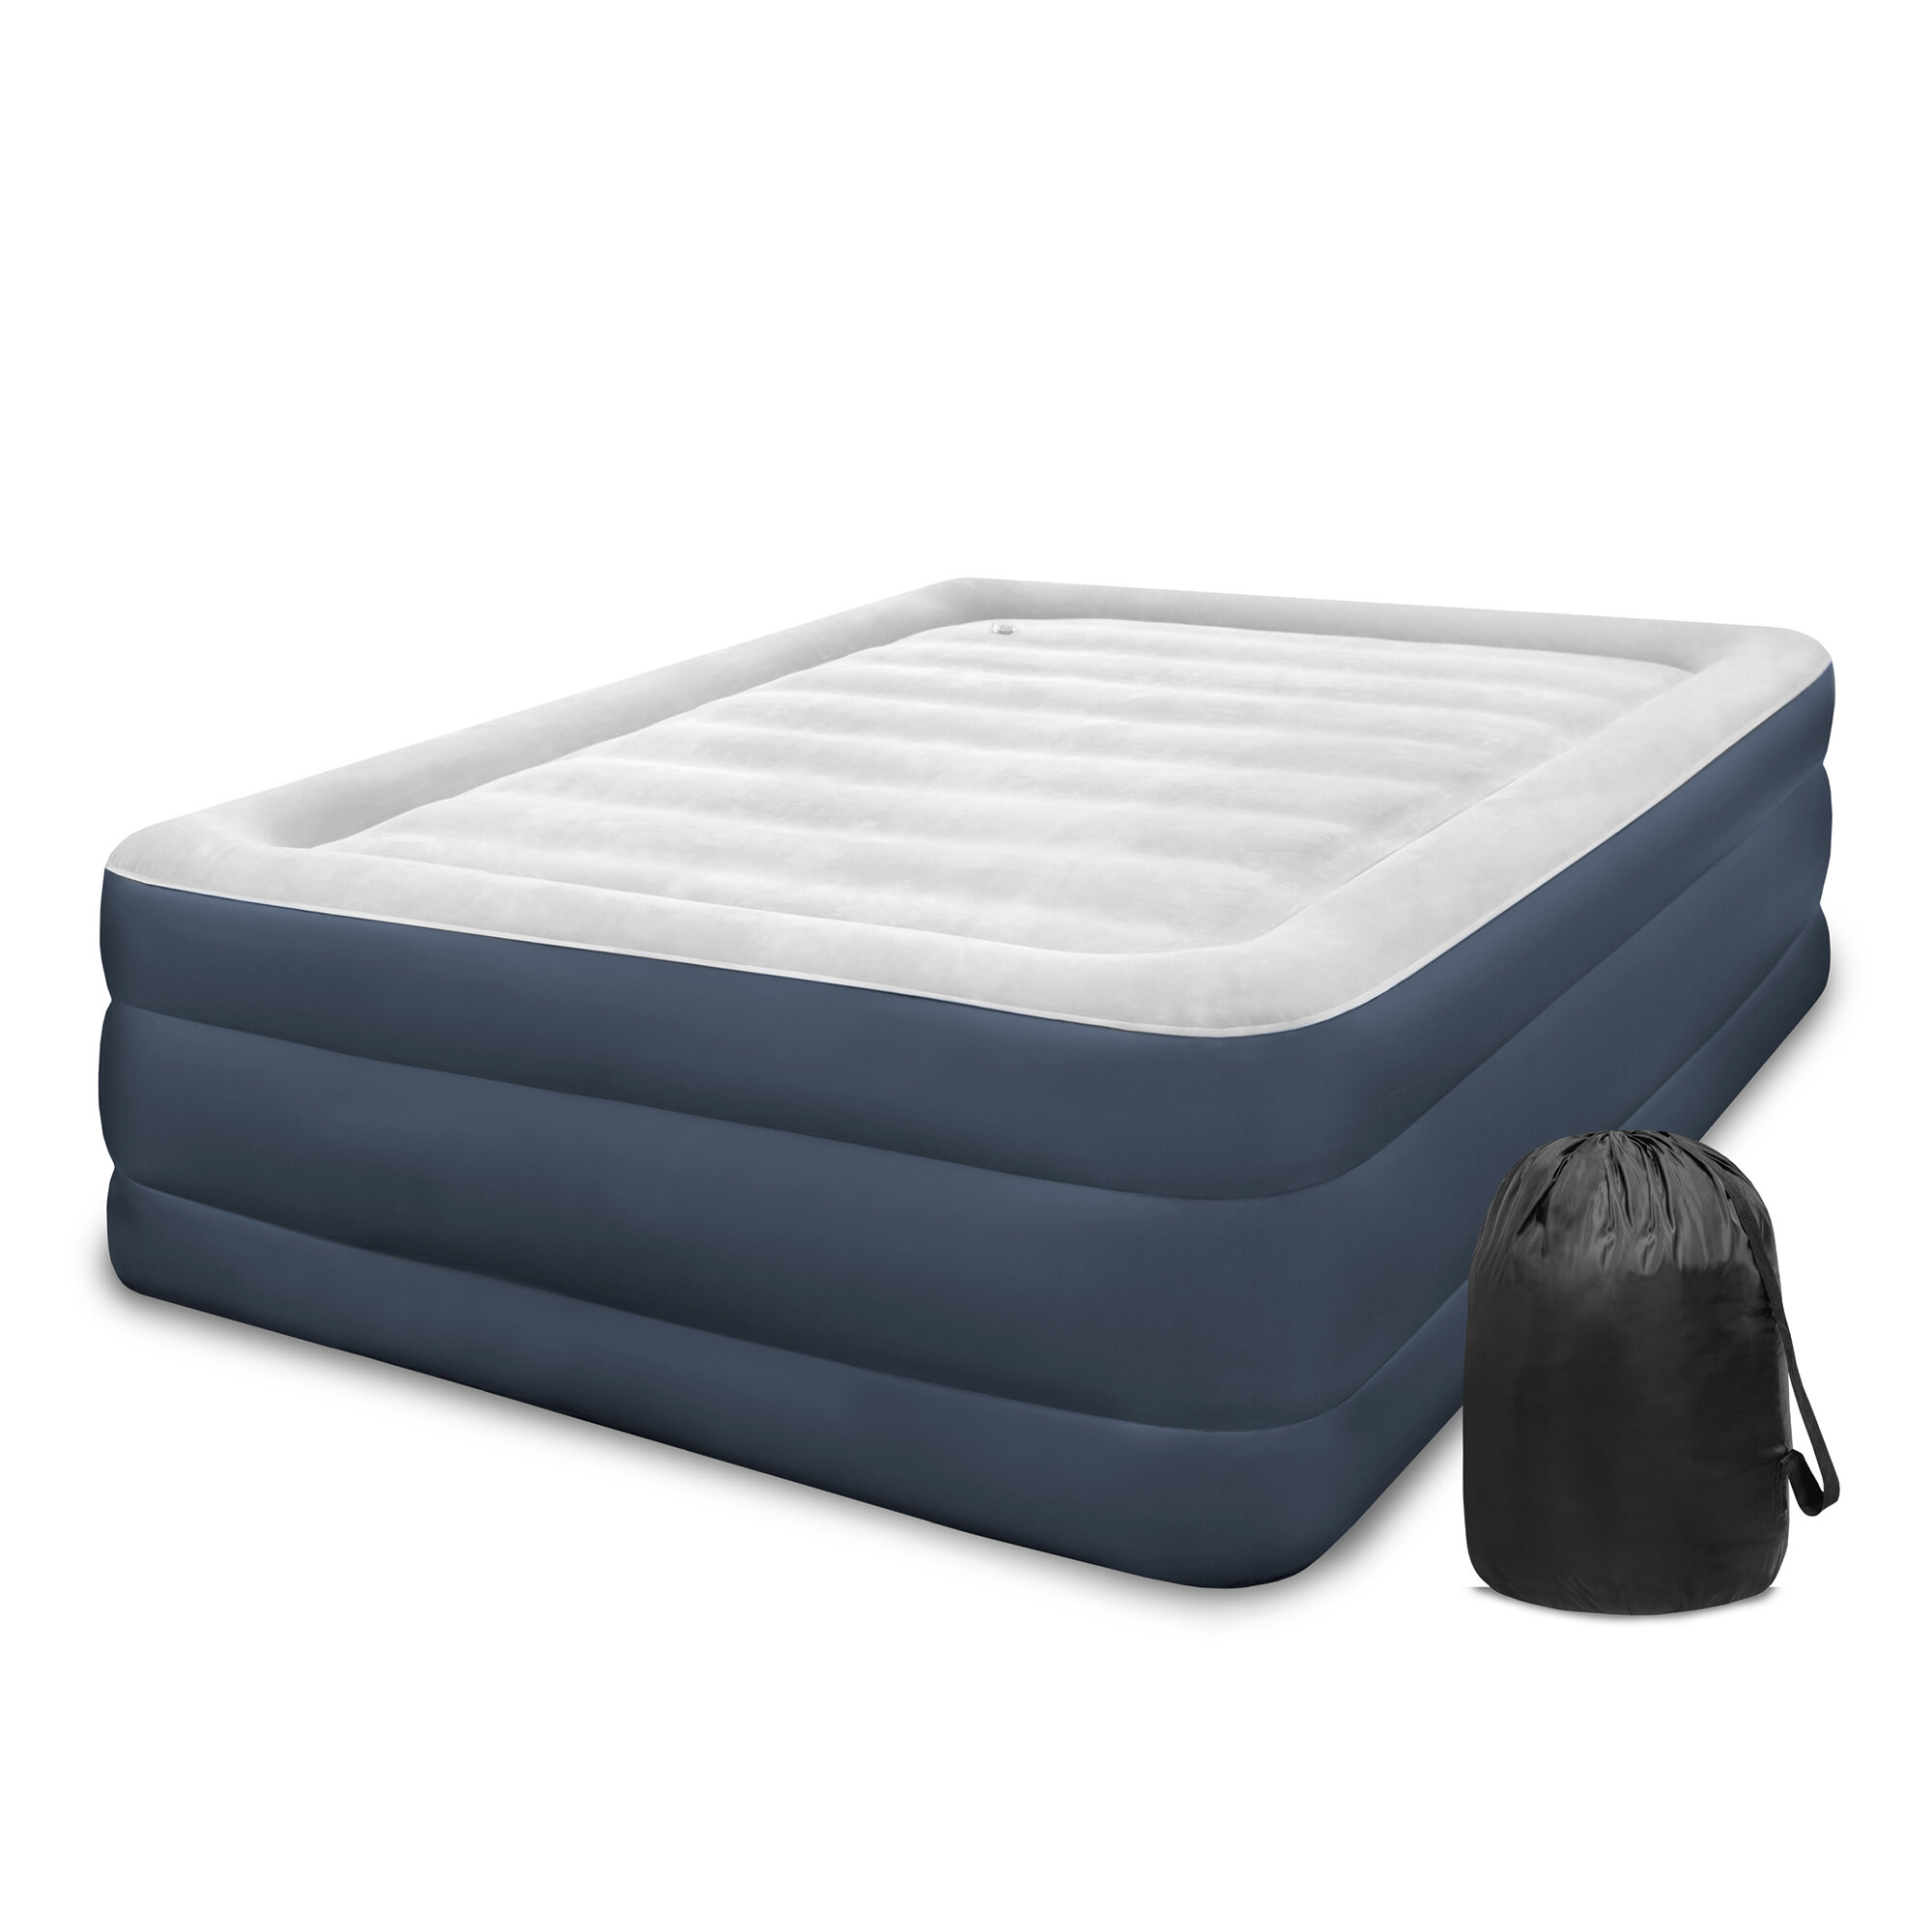 bw home mattress pump air electric premium itm inflatable in beds queen bed b camping bestway built